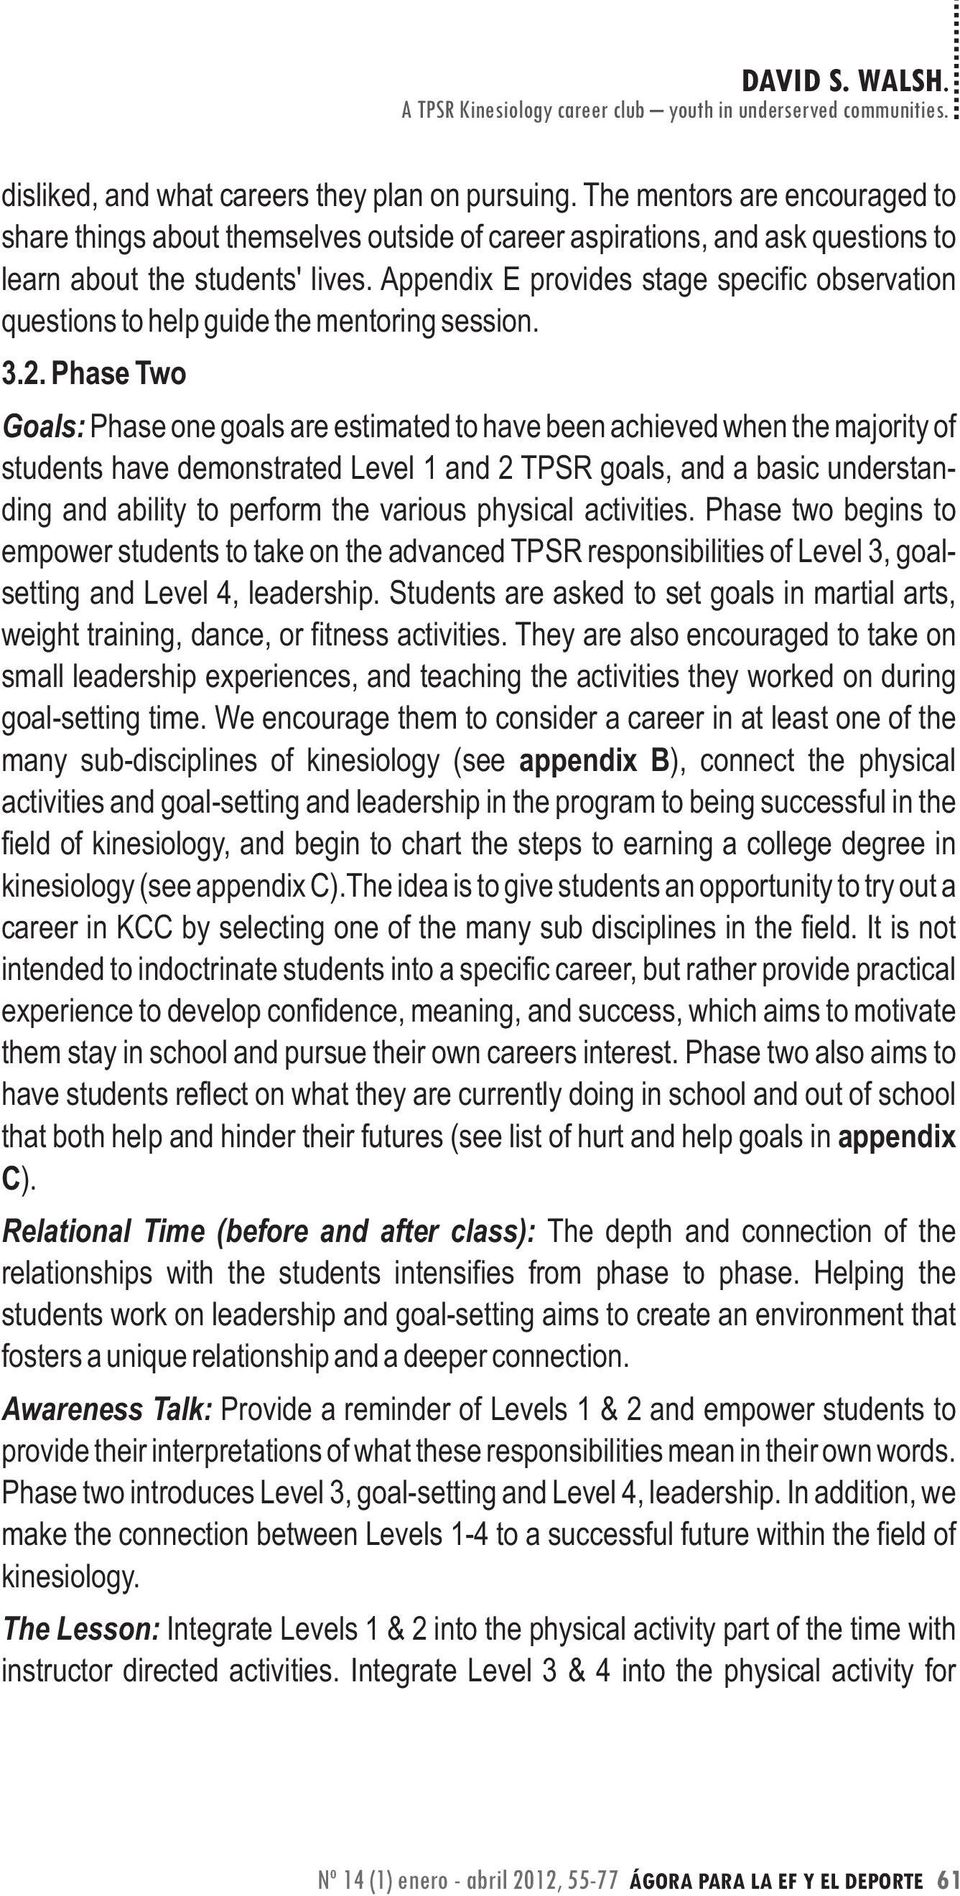 Goals: Phase one goals are estimated to have been achieved when the majority of students have demonstrated Level 1 and 2 TPSR goals, and a basic understanding and ability to perform the various